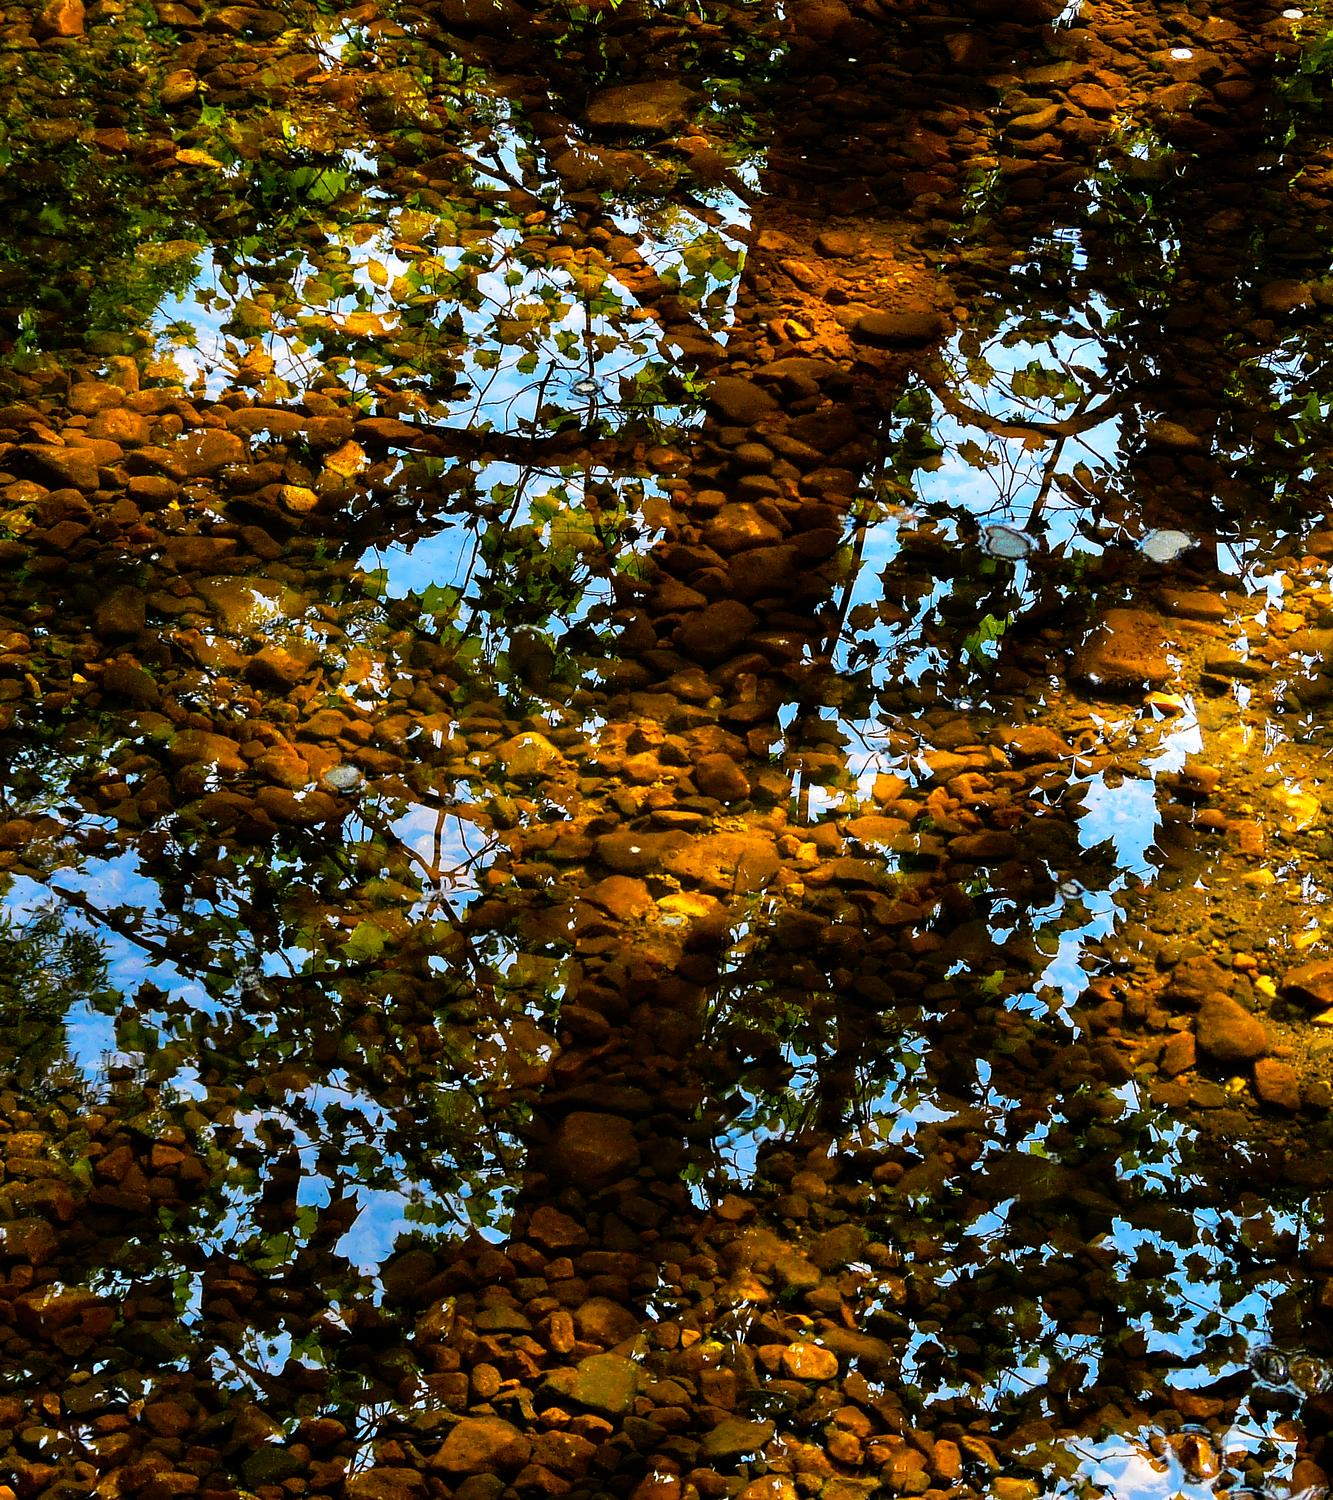 reflections on water - Clear water at Bull Run - Panasonic DMC-FZ18 - Tony Karp, design, art, photography, techno-impressionist, techno-impressionism, aerial photography , drone , drones , dji , mavic pro , video , 3D printing - Books -